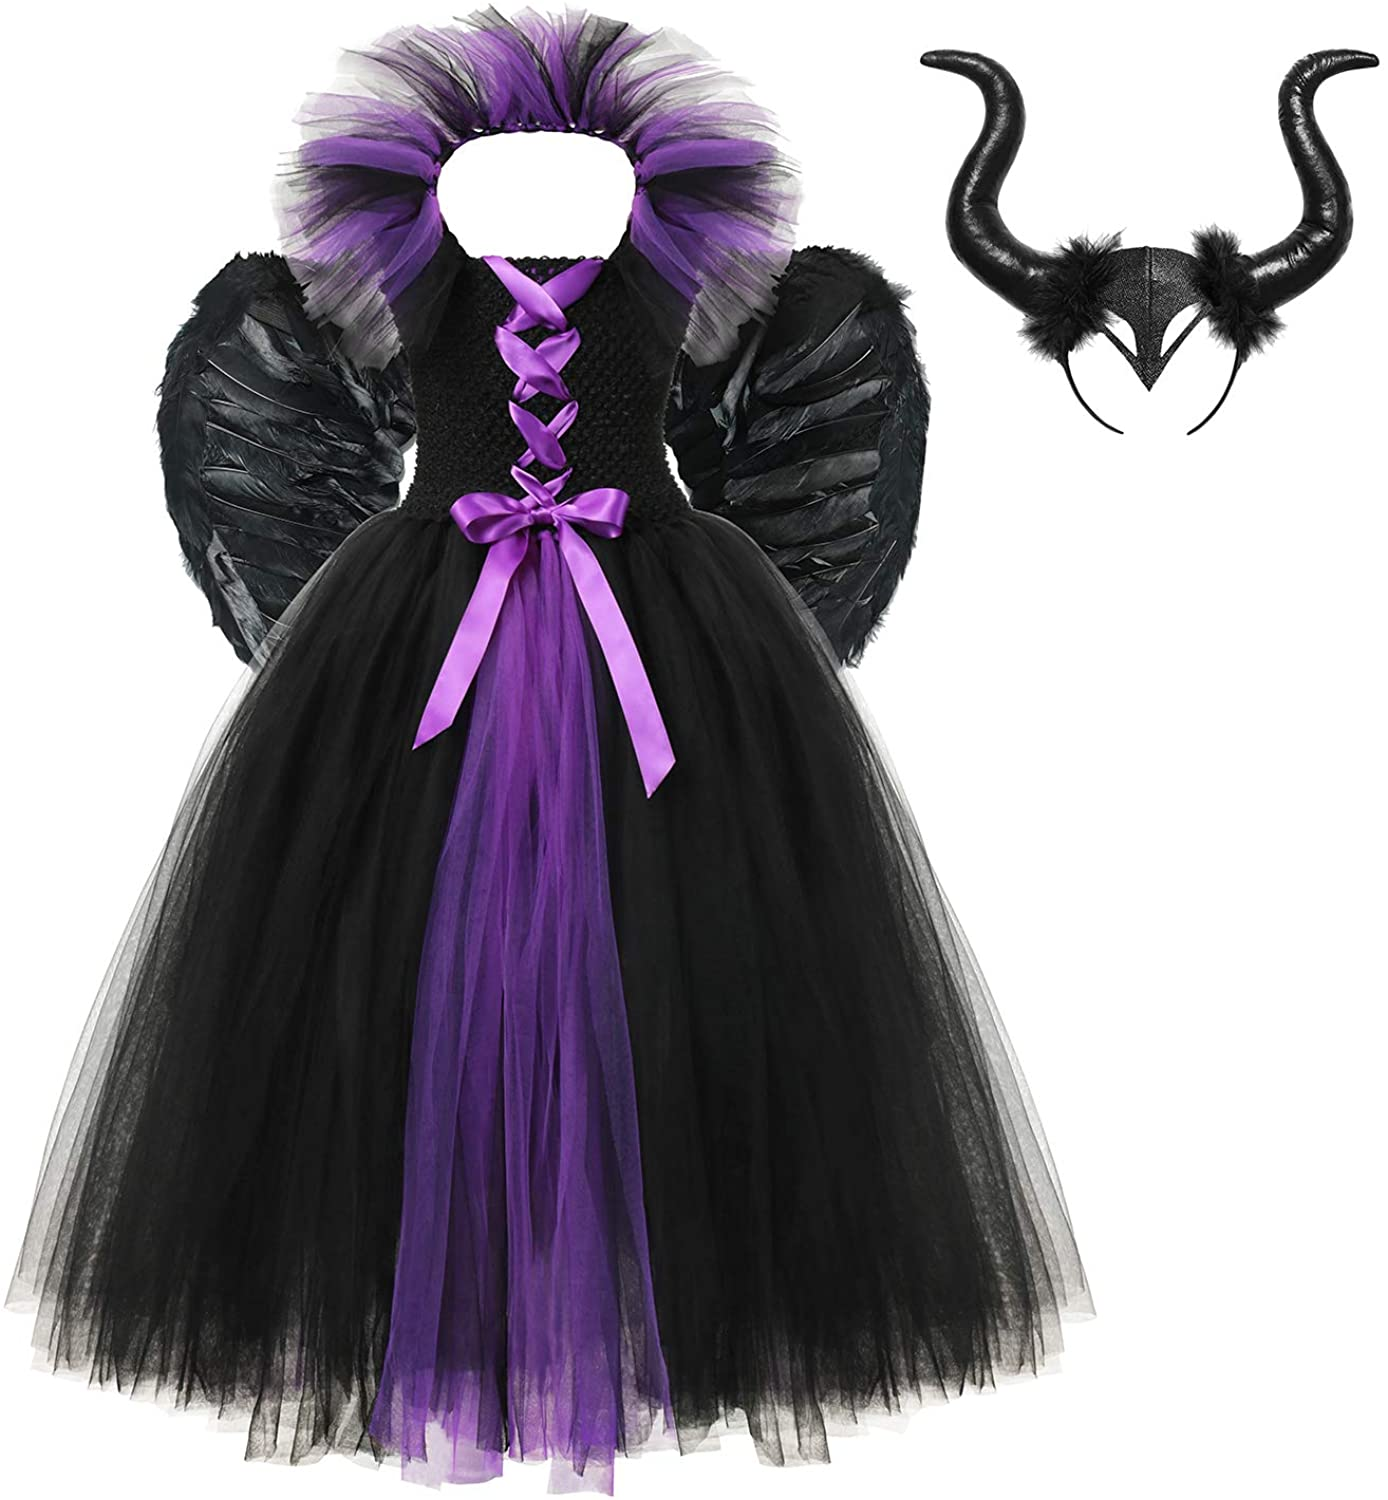 YOFEEL Little Girls Vampire Witch Costume Evil Queen Tutu Dress for Halloween Cosplay